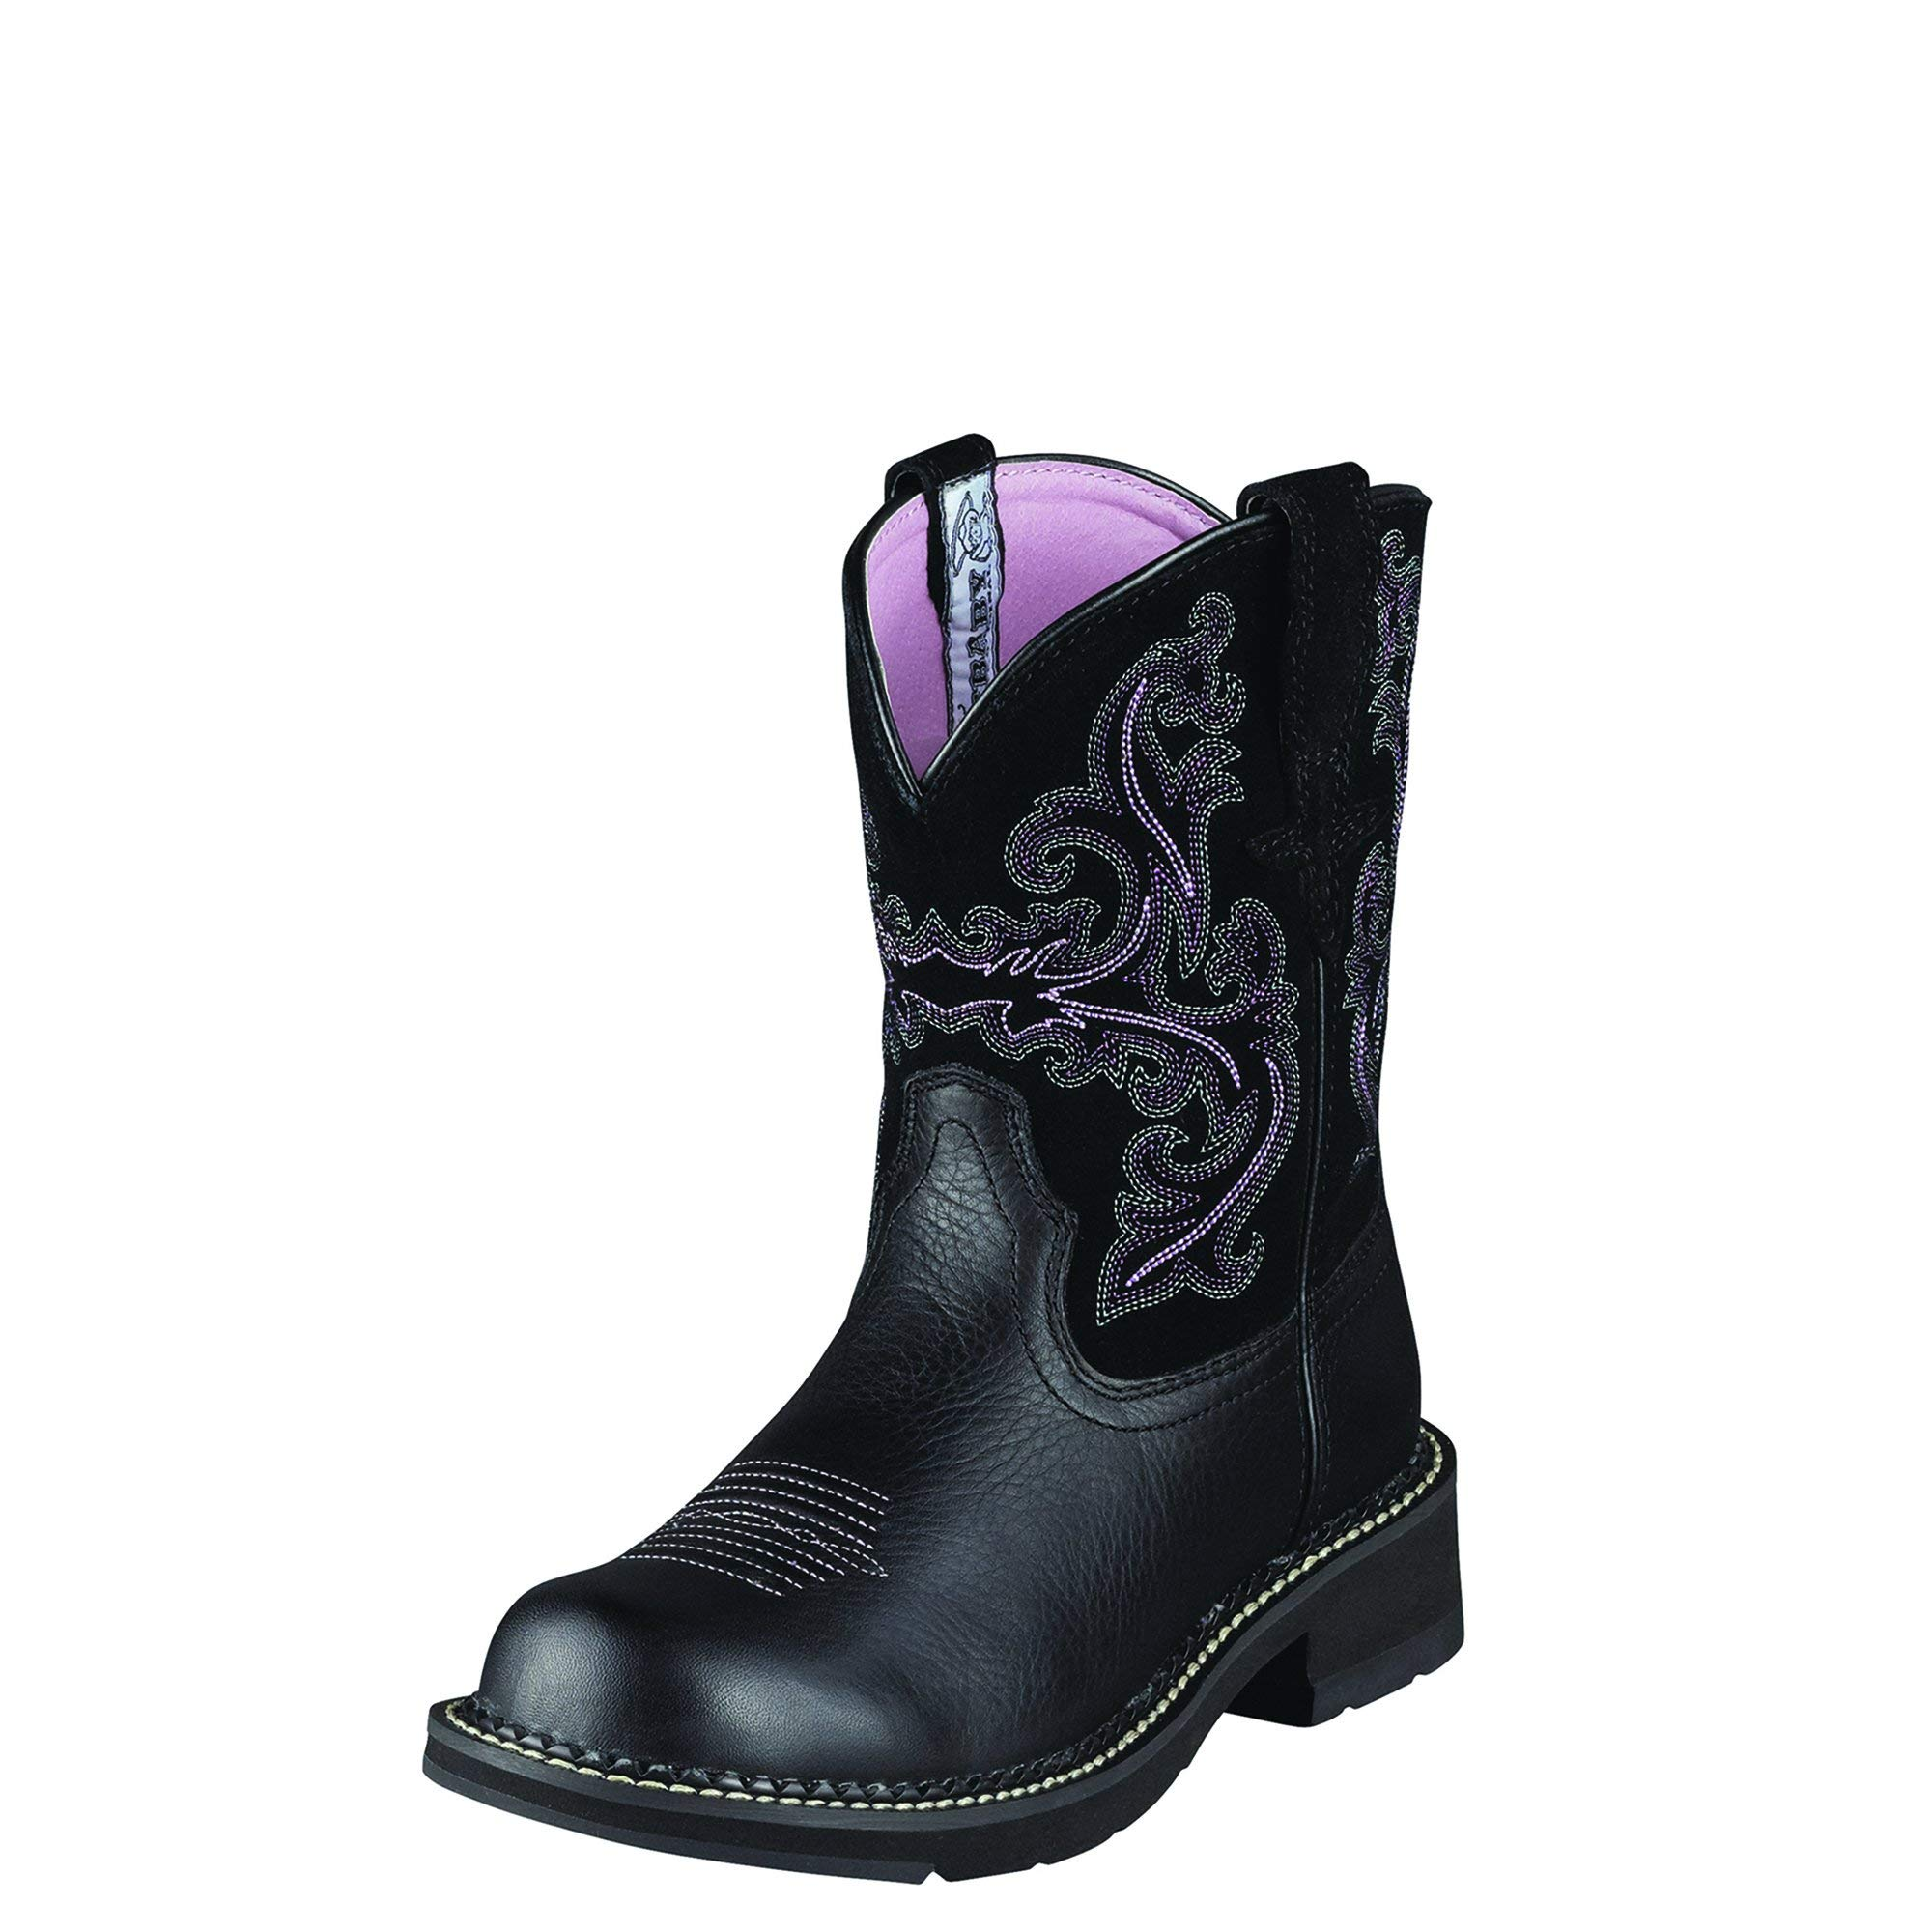 Ariat Women's Fatbaby II Western Cowboy Boot, Black Deertan/Orchid, 8 M US by ARIAT